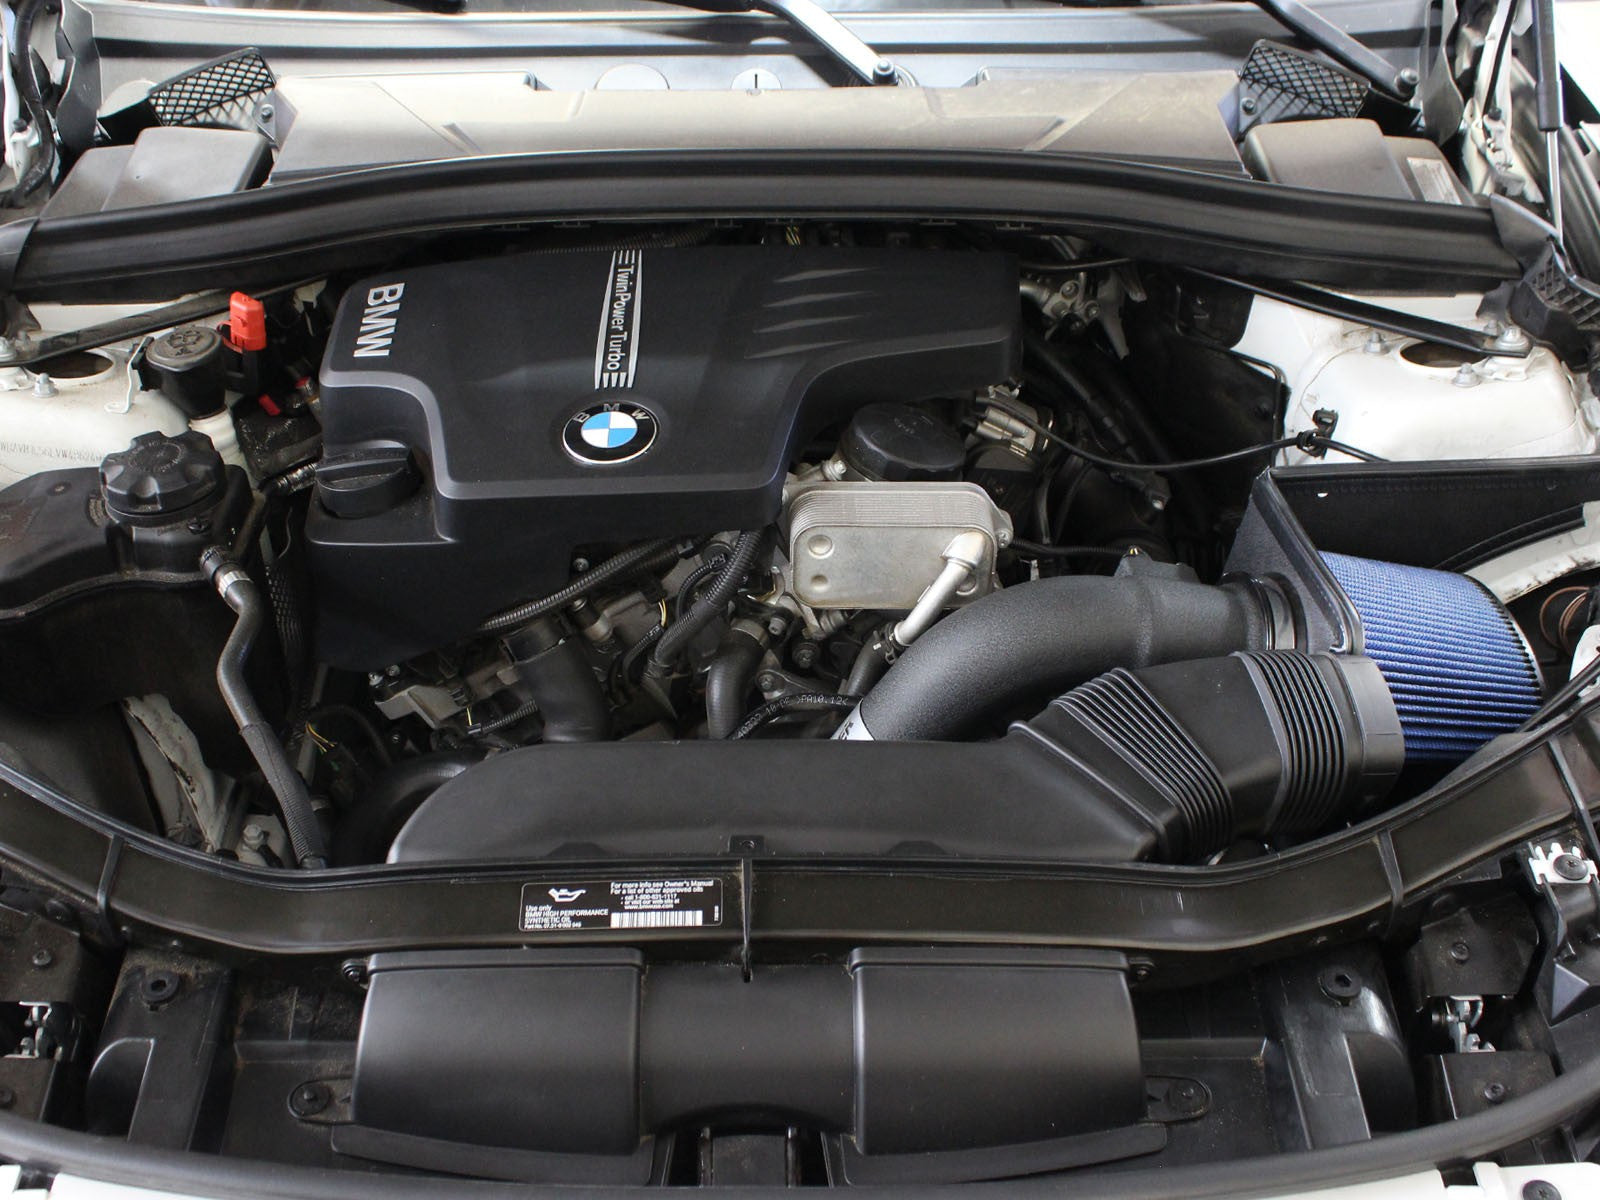 aFe POWER E84 X1 28i/ix 12-15 L4-2.0L (t) N20 Magnum FORCE Stage-2 Pro 5R Cold Air Intake System - Bimmer Performance Center